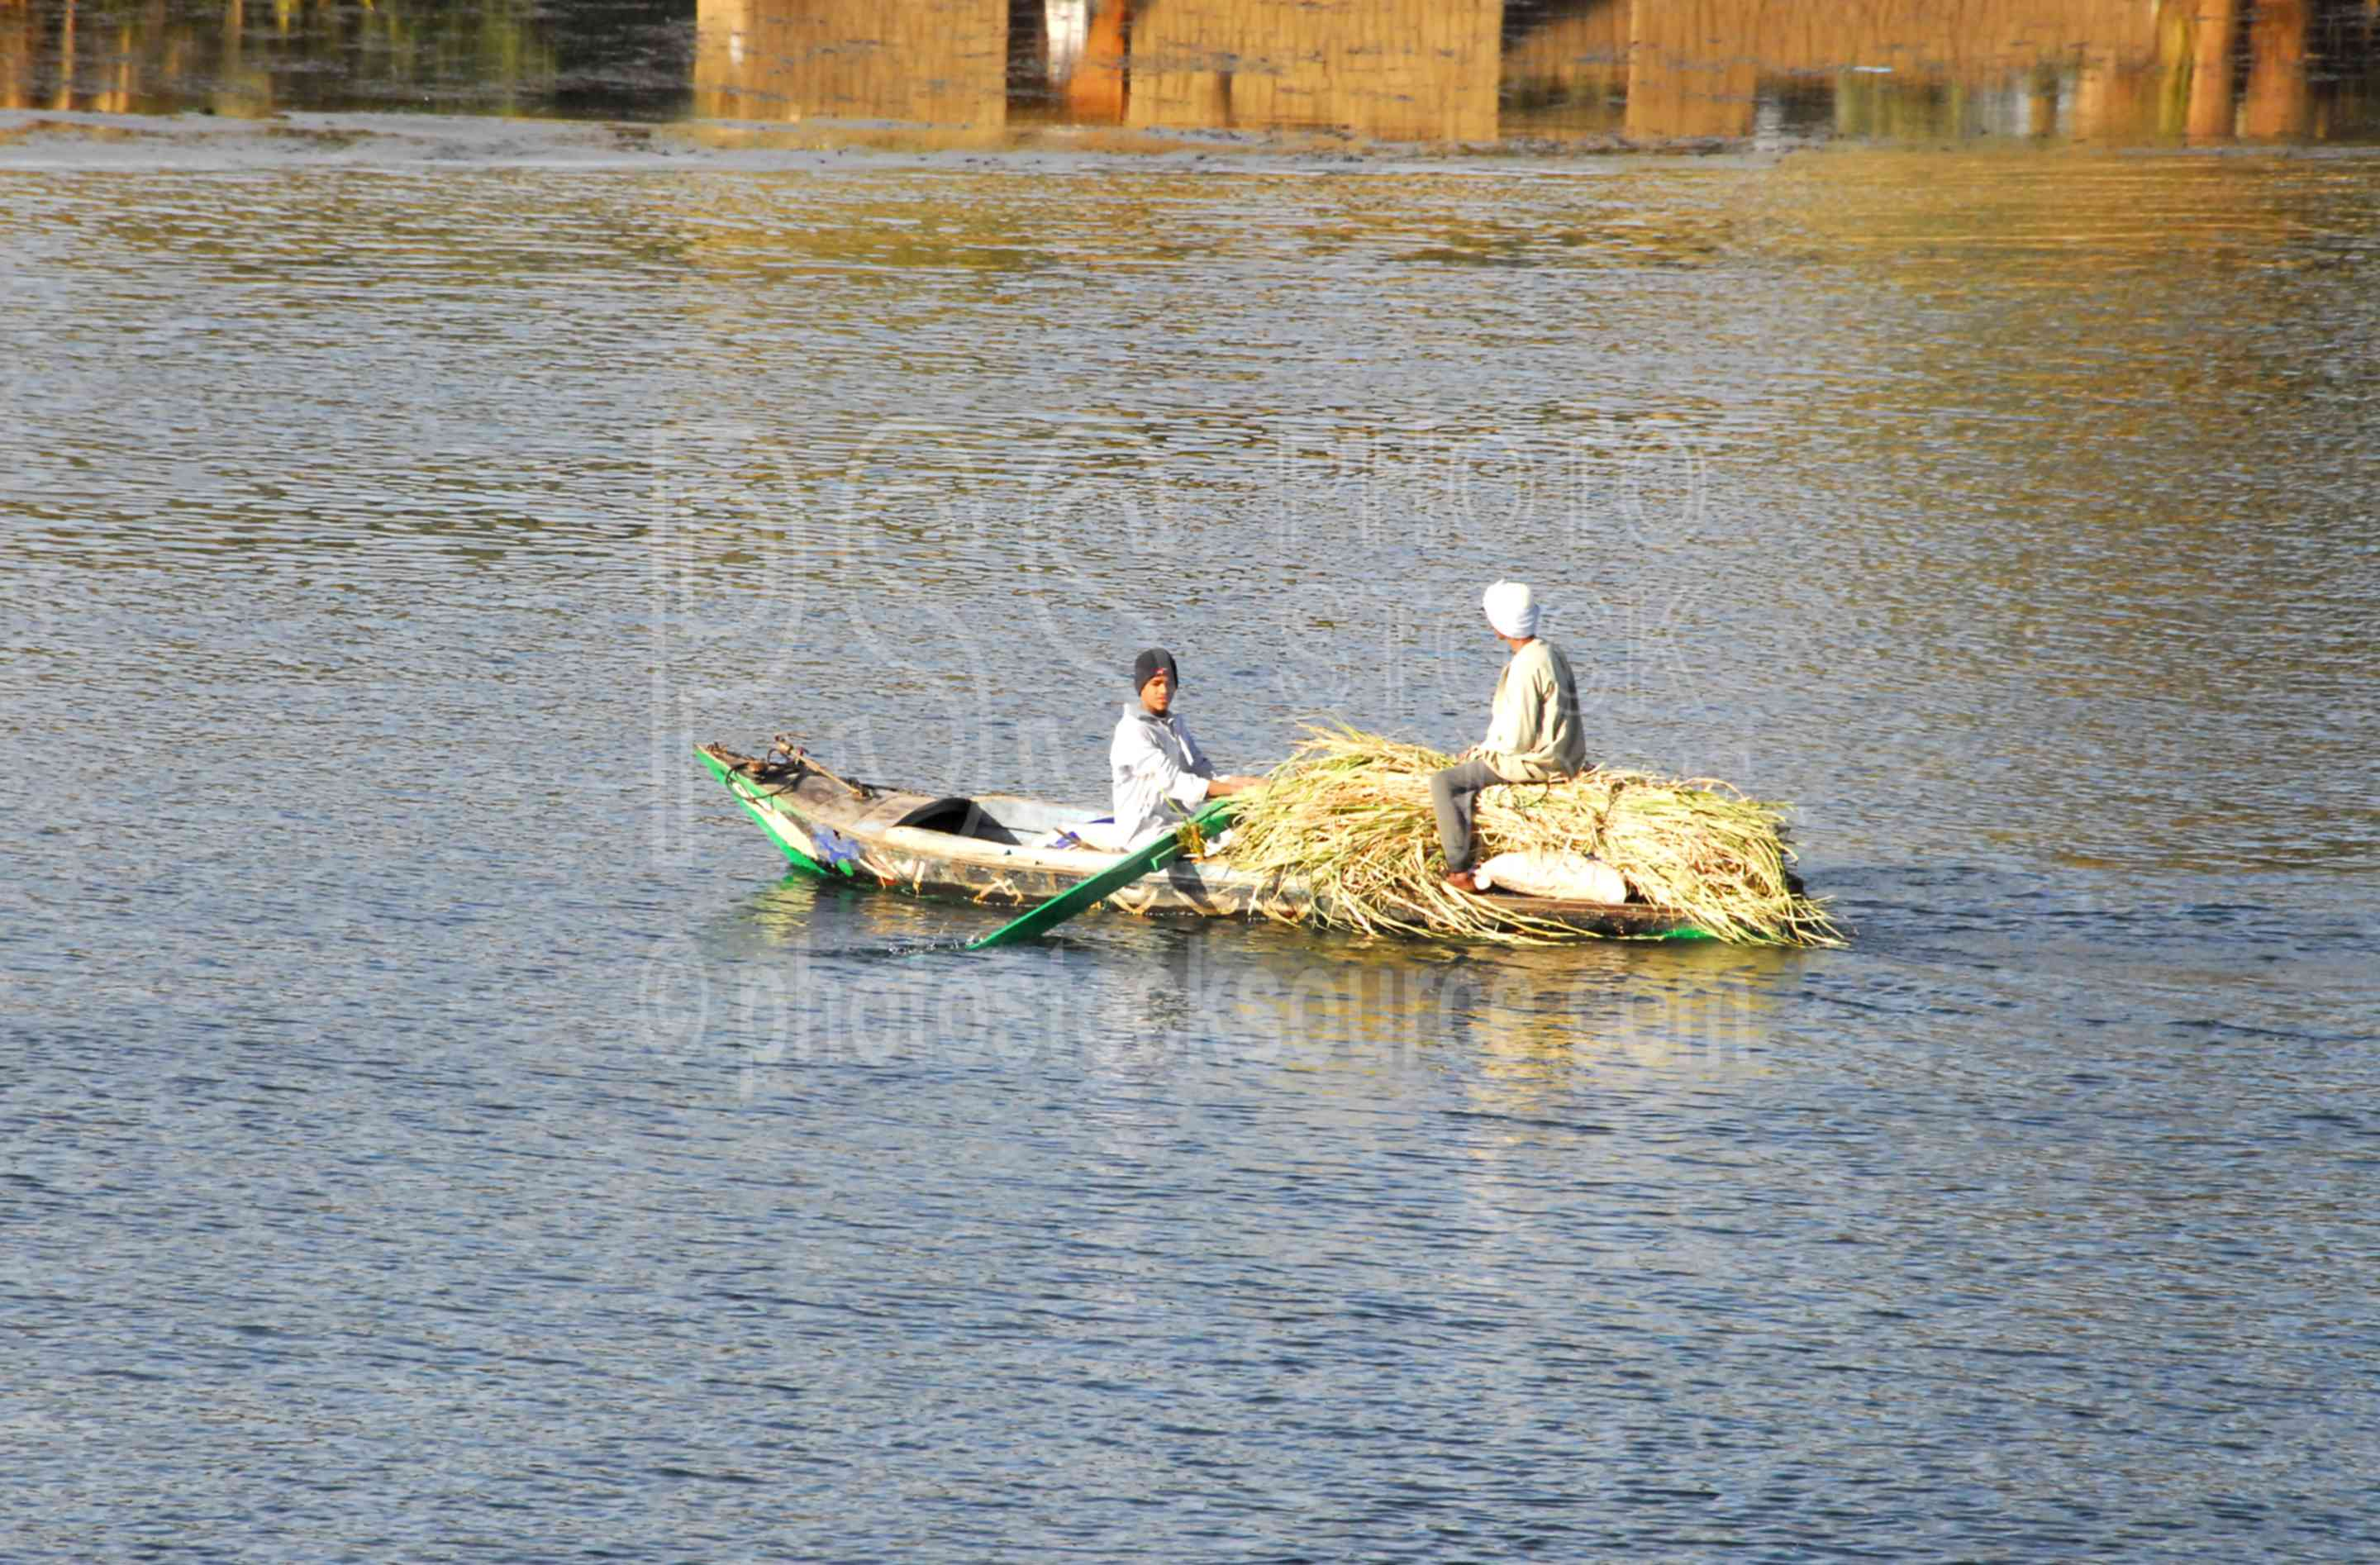 Row Boat on Nile River,nile,nile river,row boat,people,lakes rivers,boats